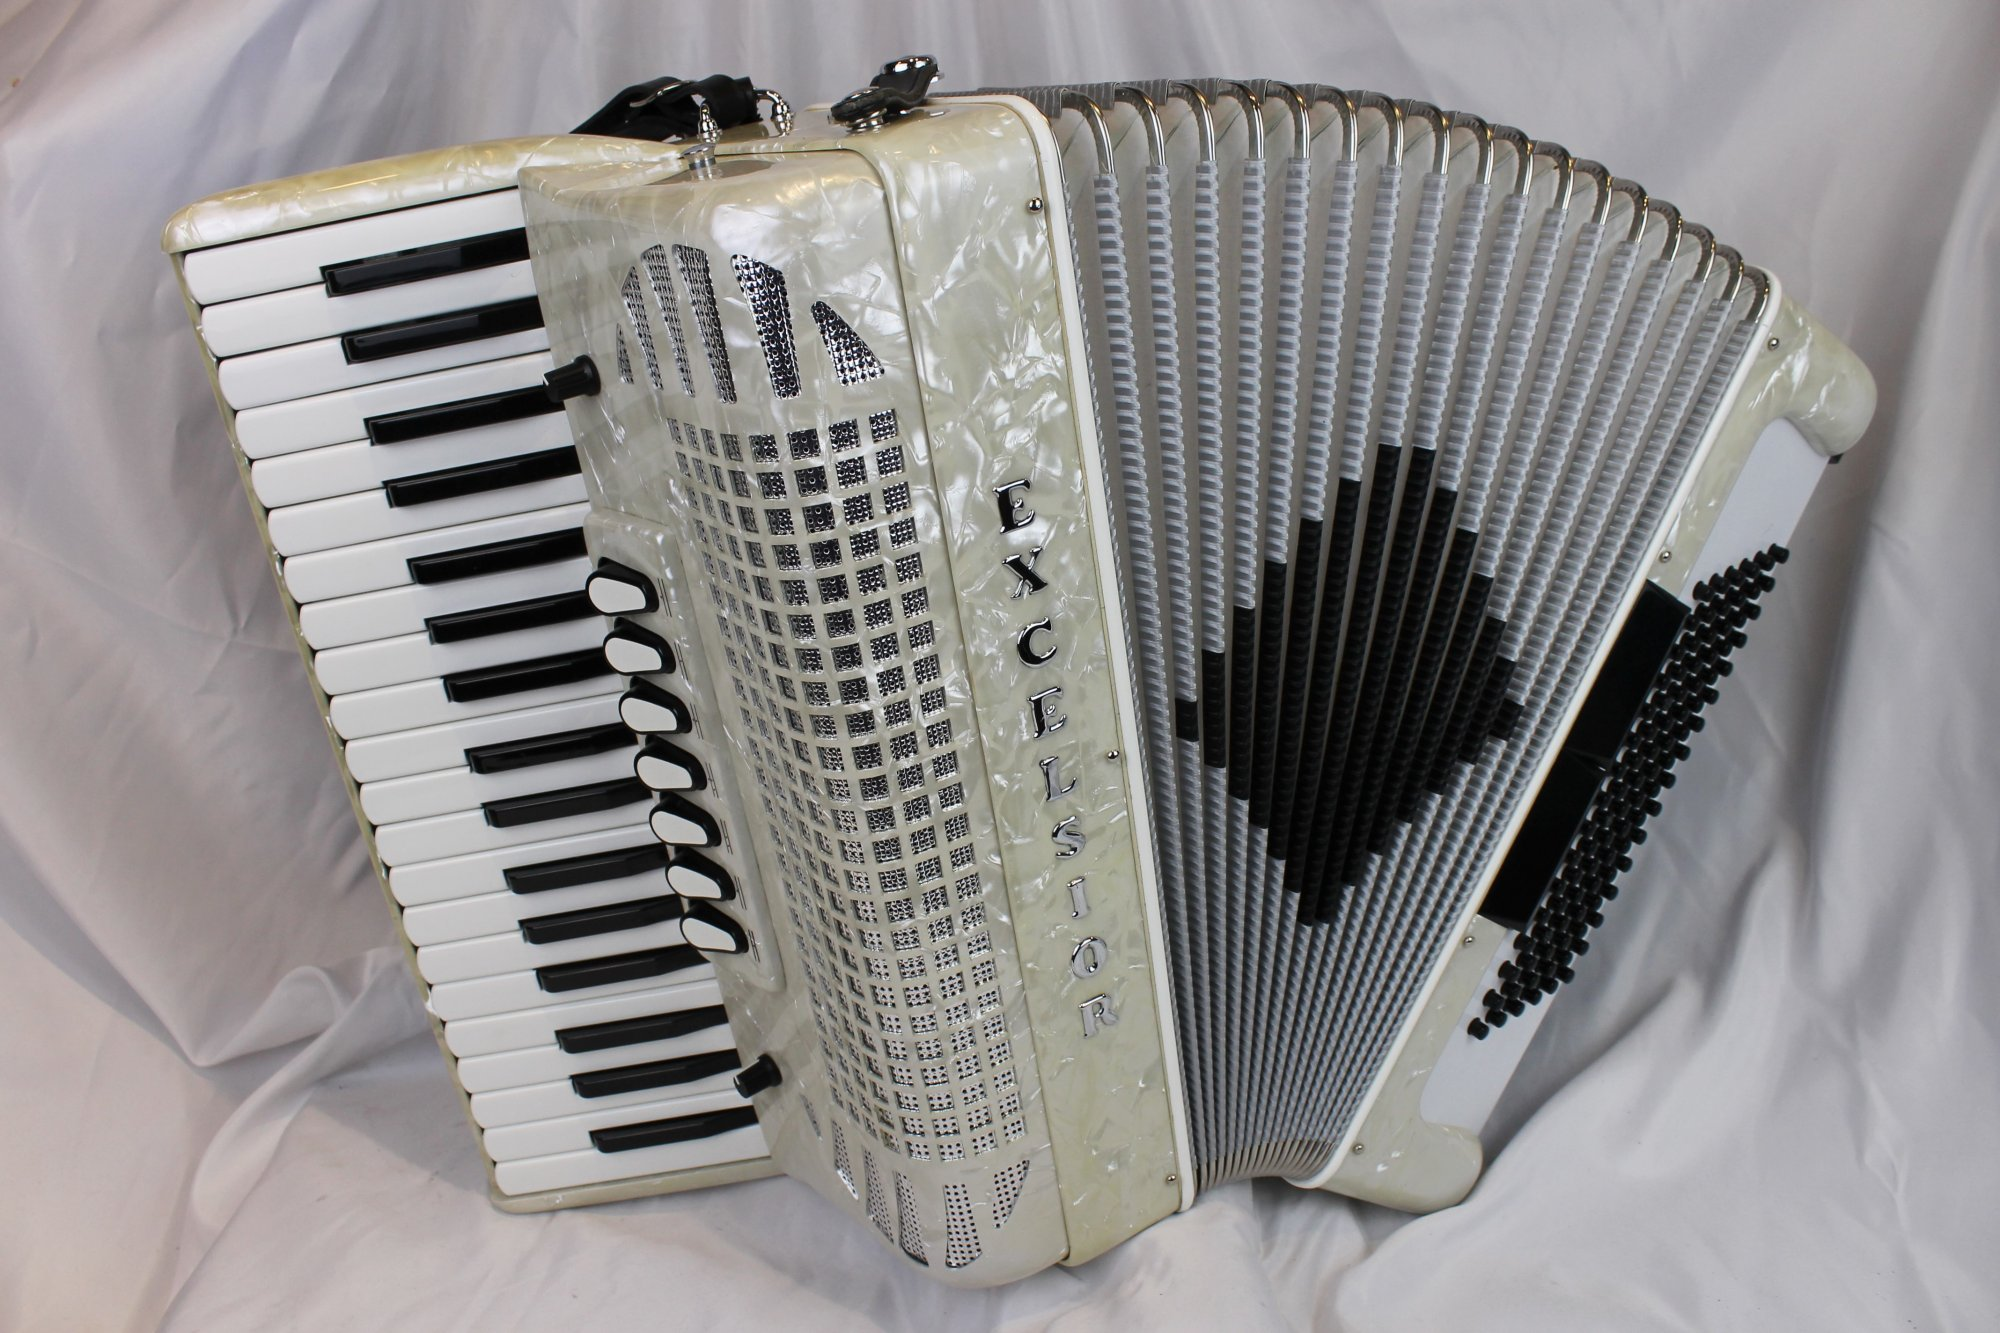 5023 - Like New White Pearl Excelsior 1296 Piano Accordion LMM 37 96